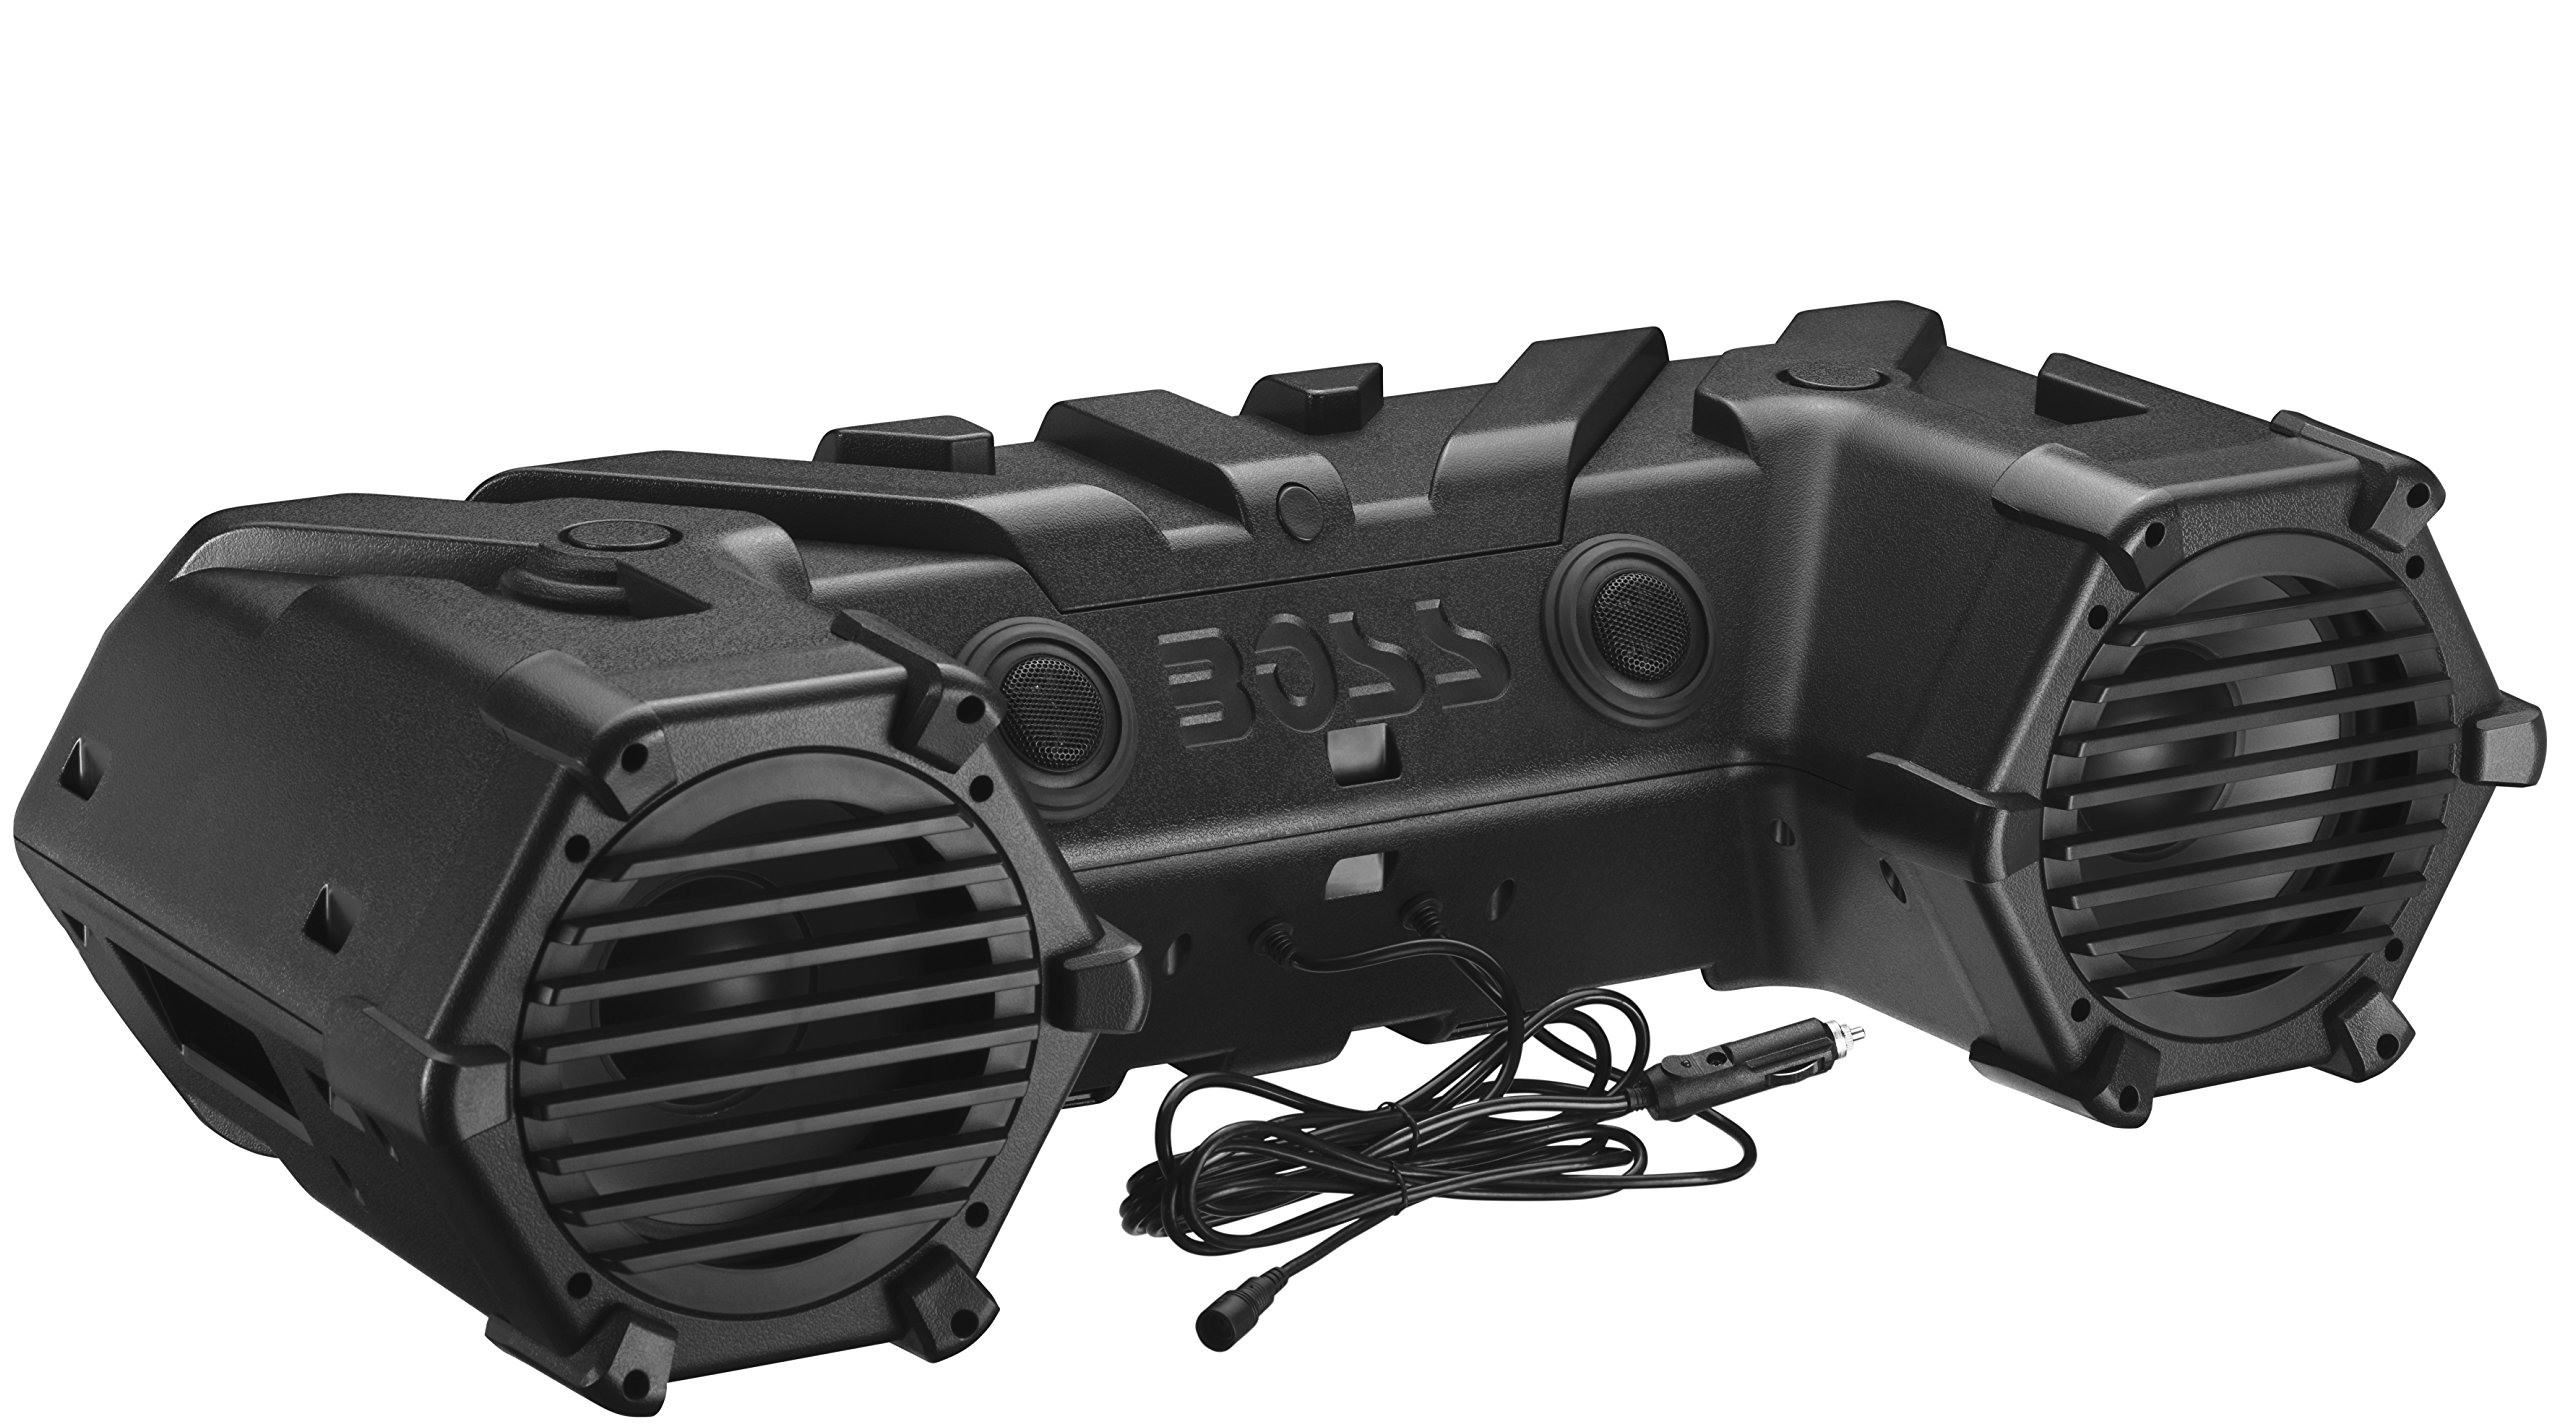 BOSS Audio ATVB90 Bluetooth, Amplified,  ATV/UTV Sound System, Weather-Proof Marine Grade, Bluetooth Remote, 12 Volt Application Friendly